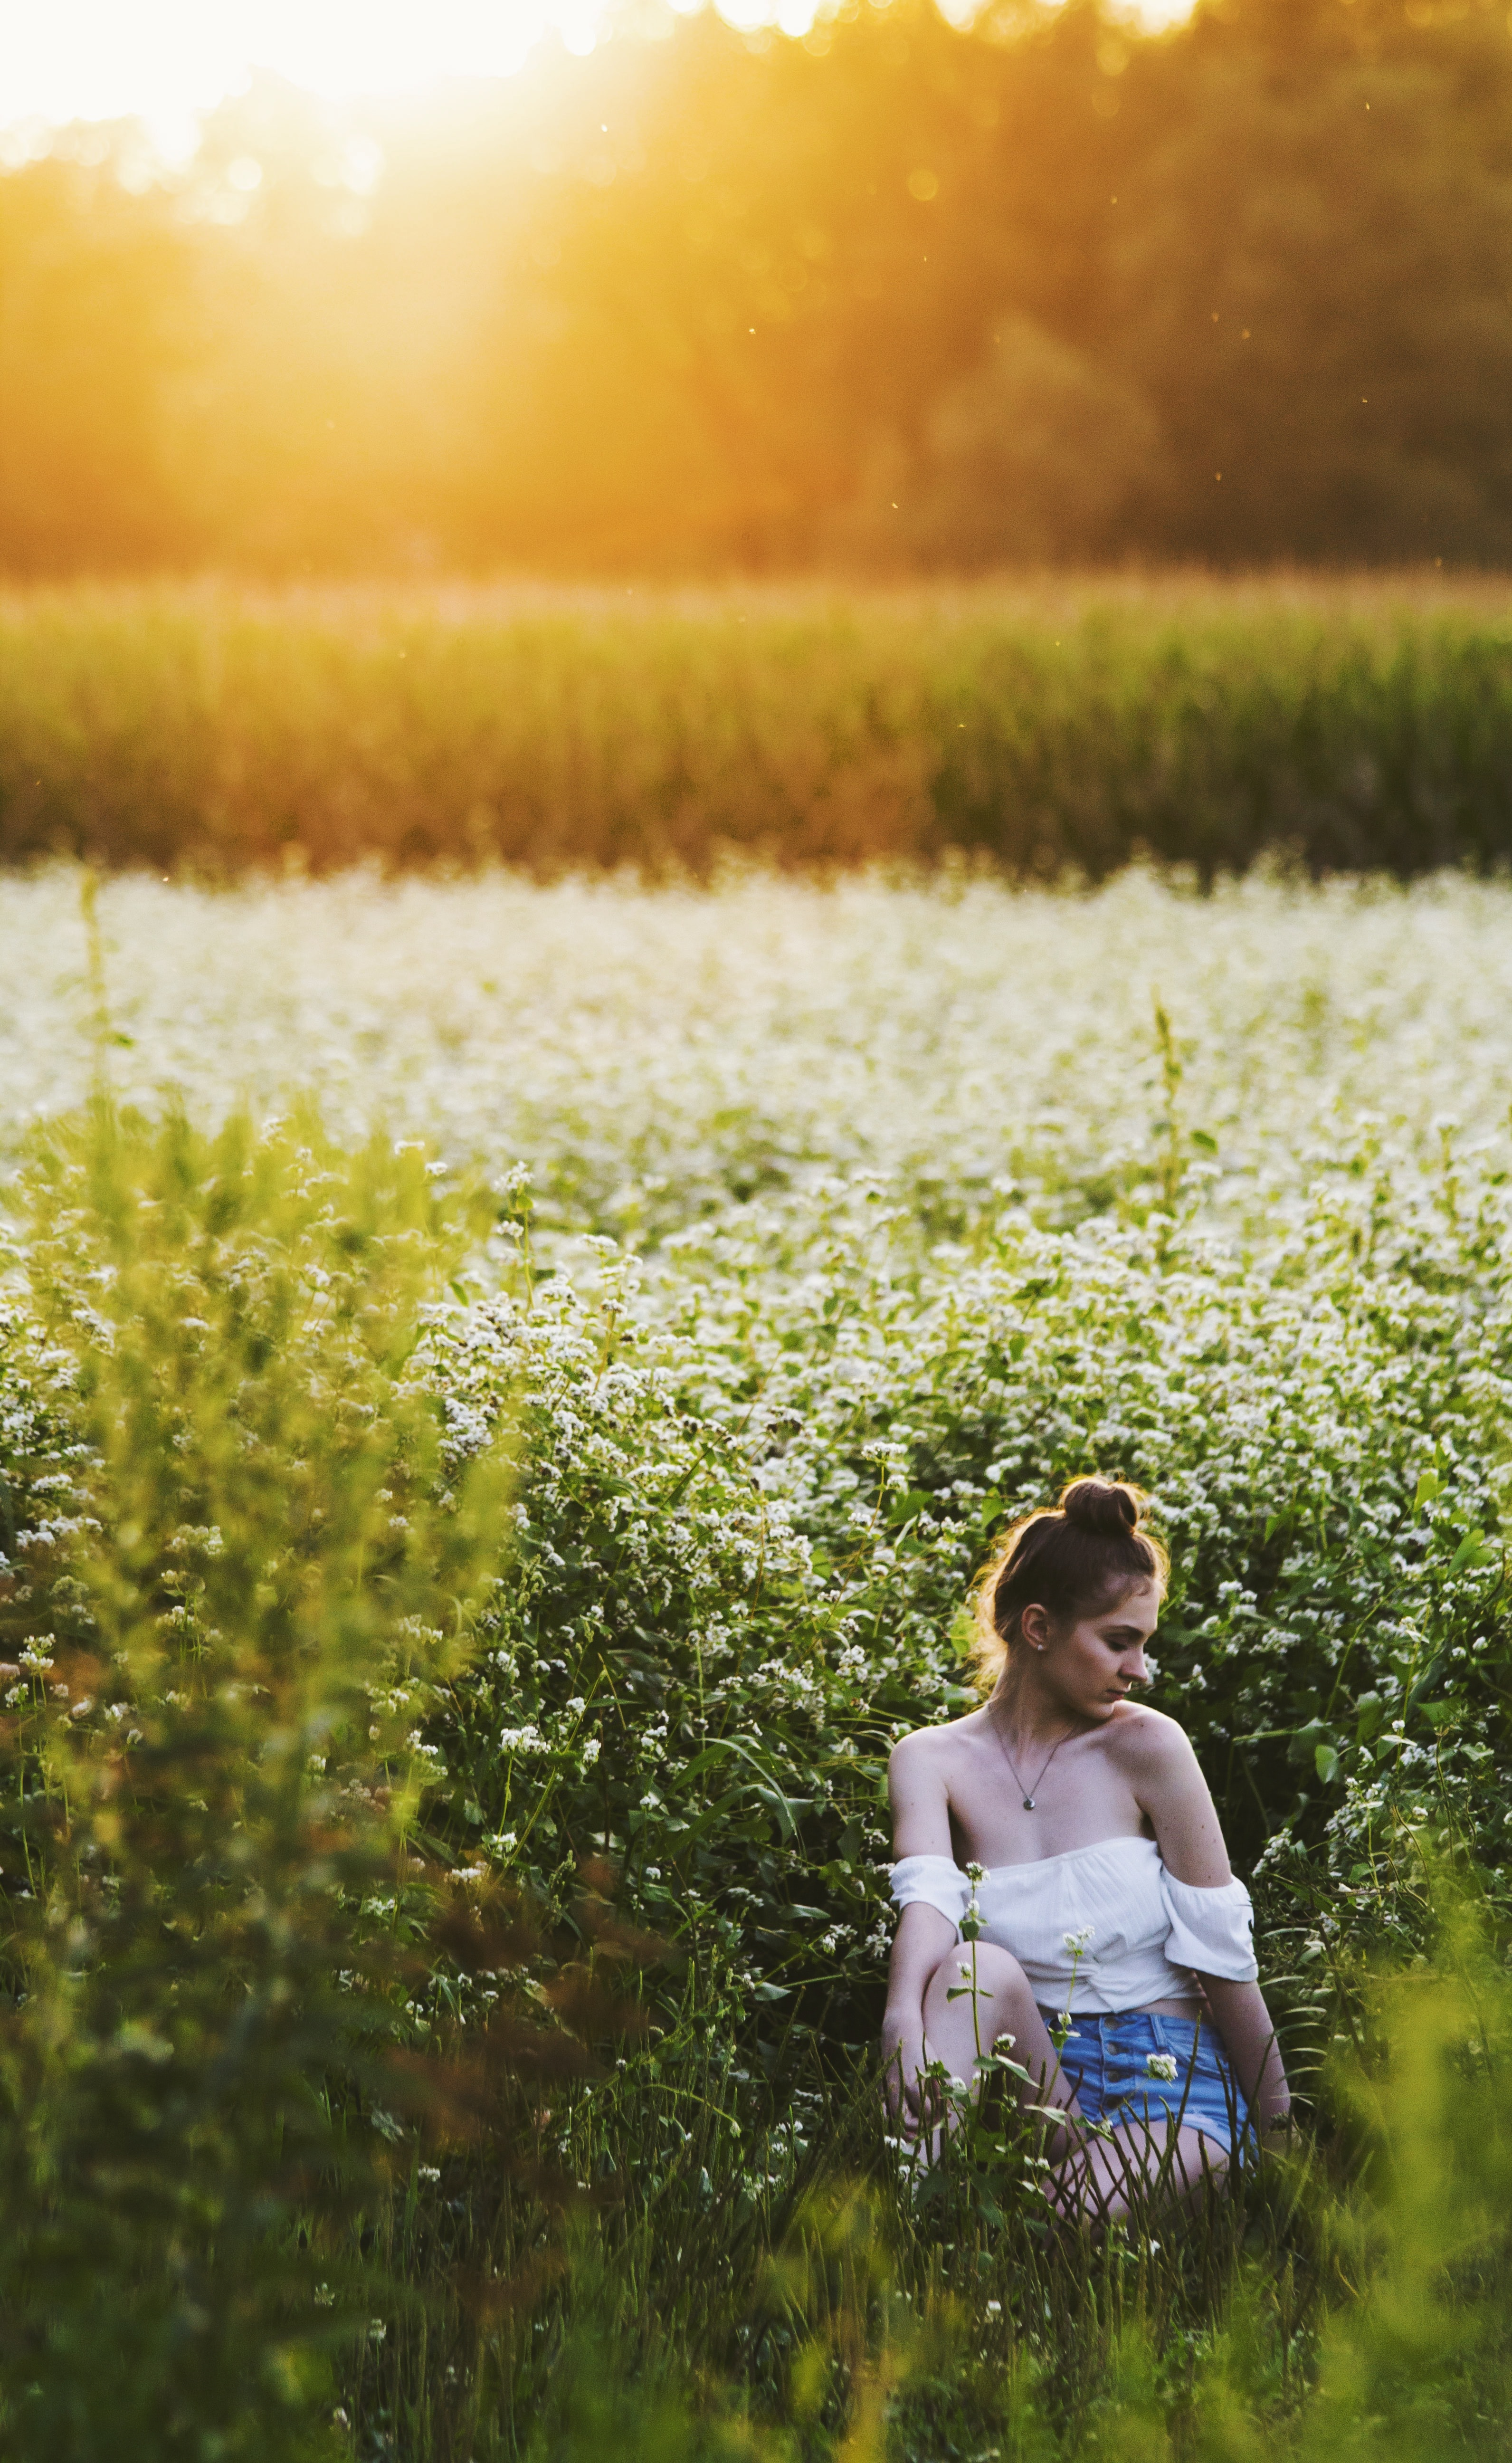 golden hour photography of woman in white top and blue denim shorts